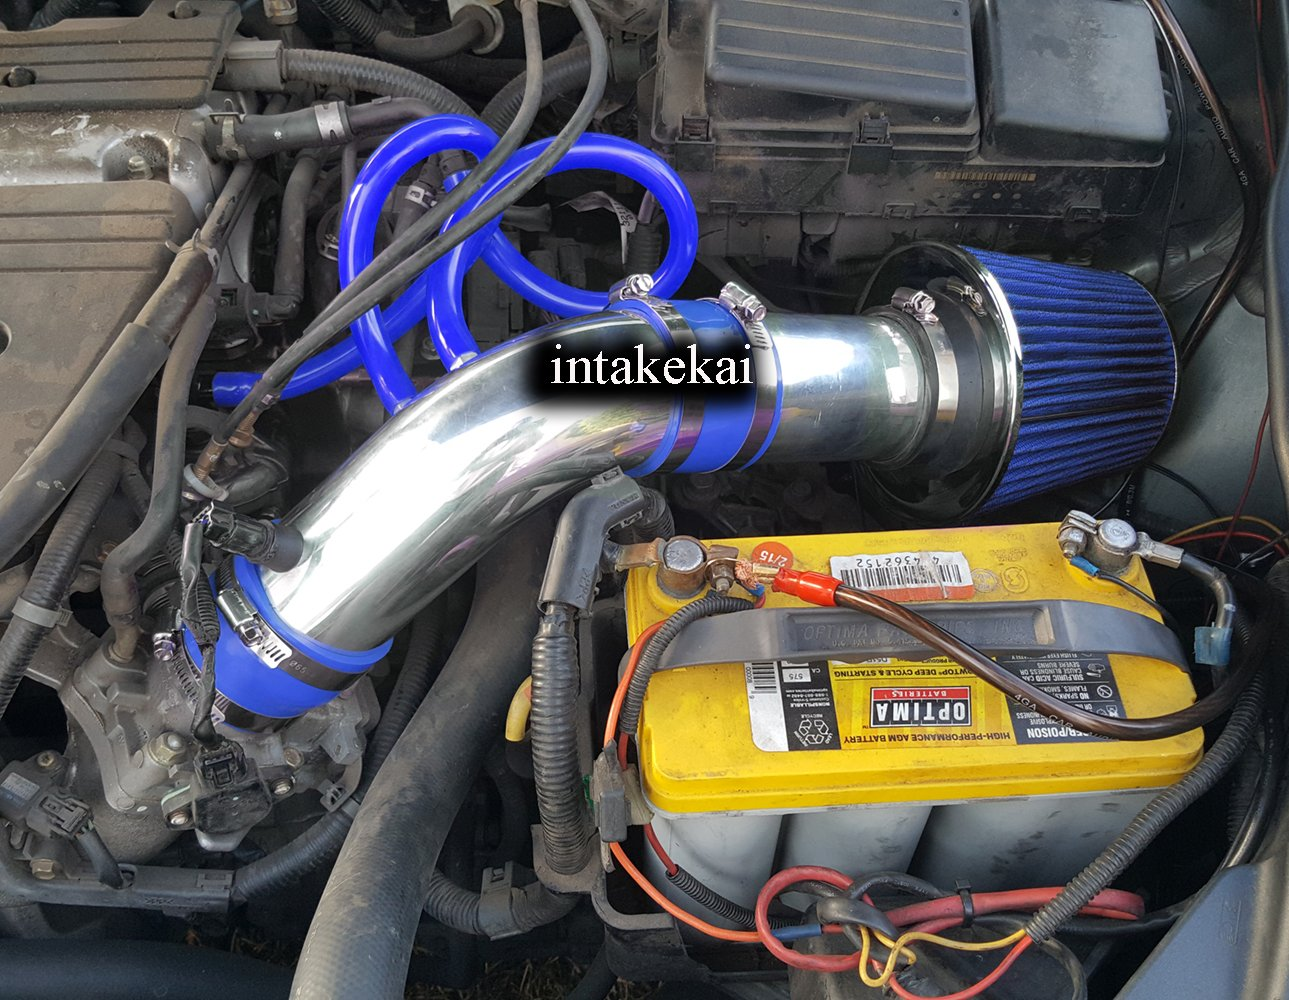 Performance Air Intake for 2004 2005 2006 2007 2008 ACURA TSX 2.4 l4 BASE ENGINE (BLUE) by INTAKE KAI